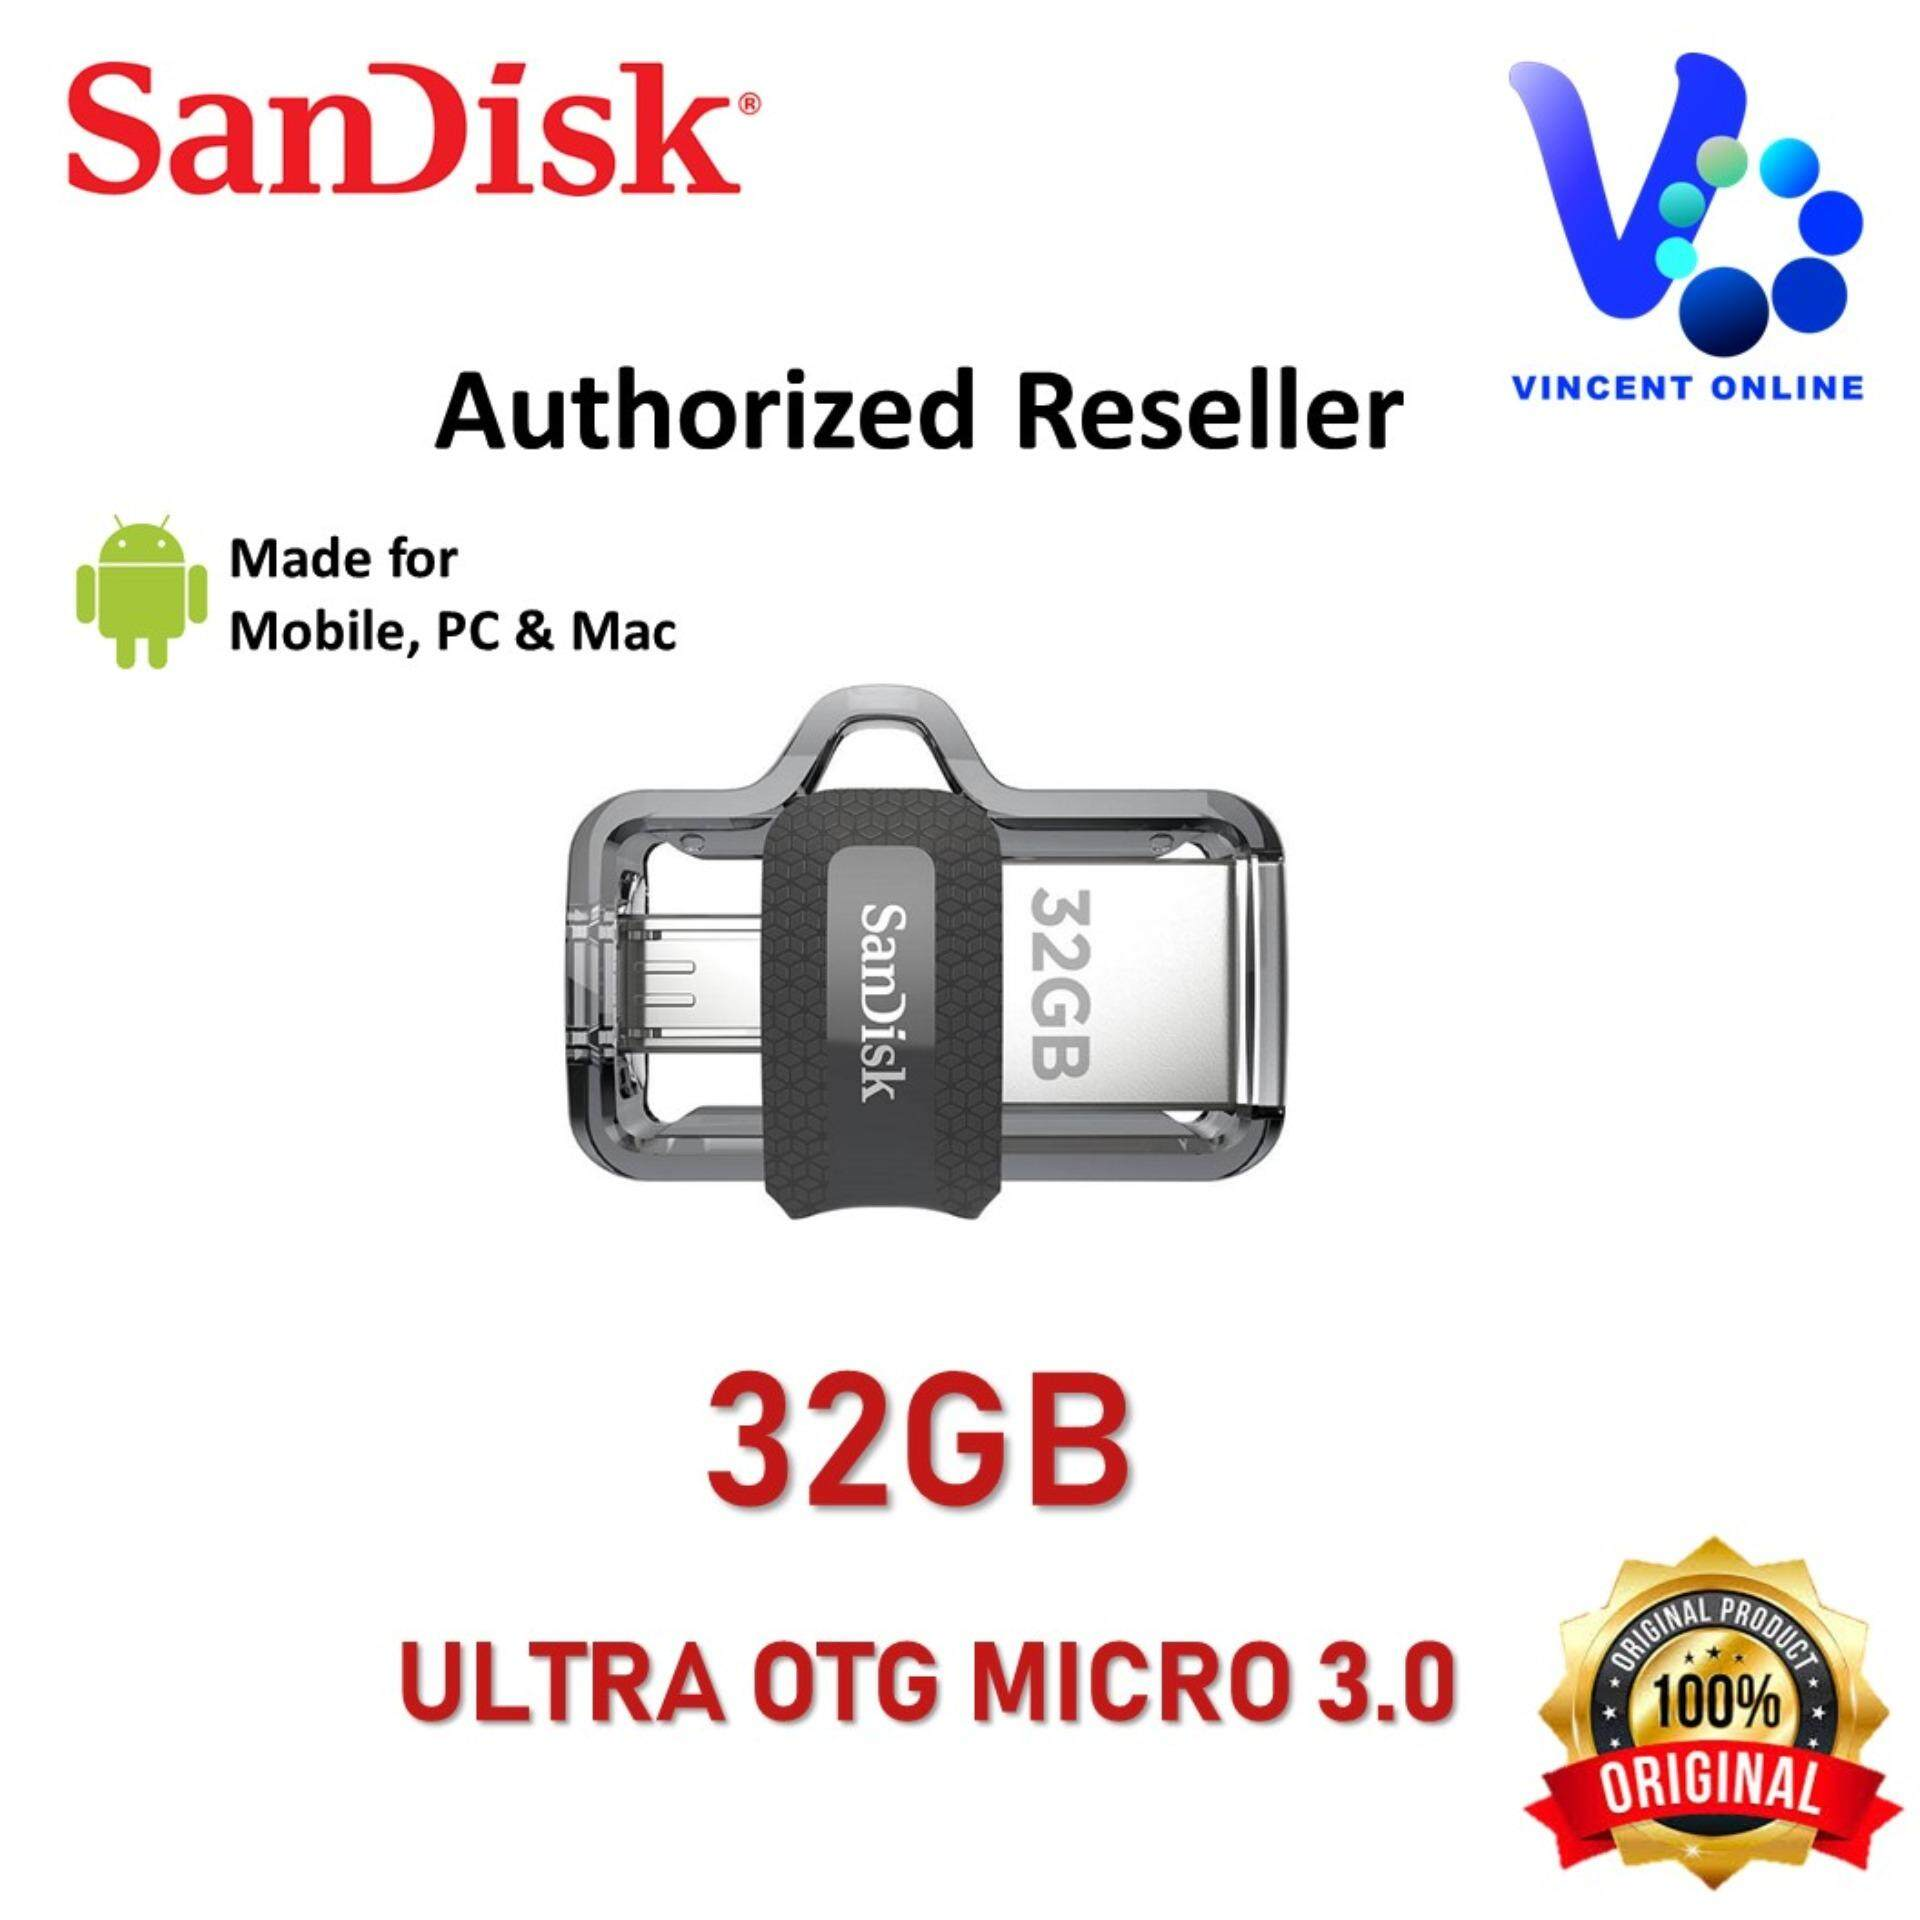 Otg Drives For The Best Prices In Malaysia Sandisk 16gb Ultra Dual Usb Drive 30 100 Original 32gb M30 Flash